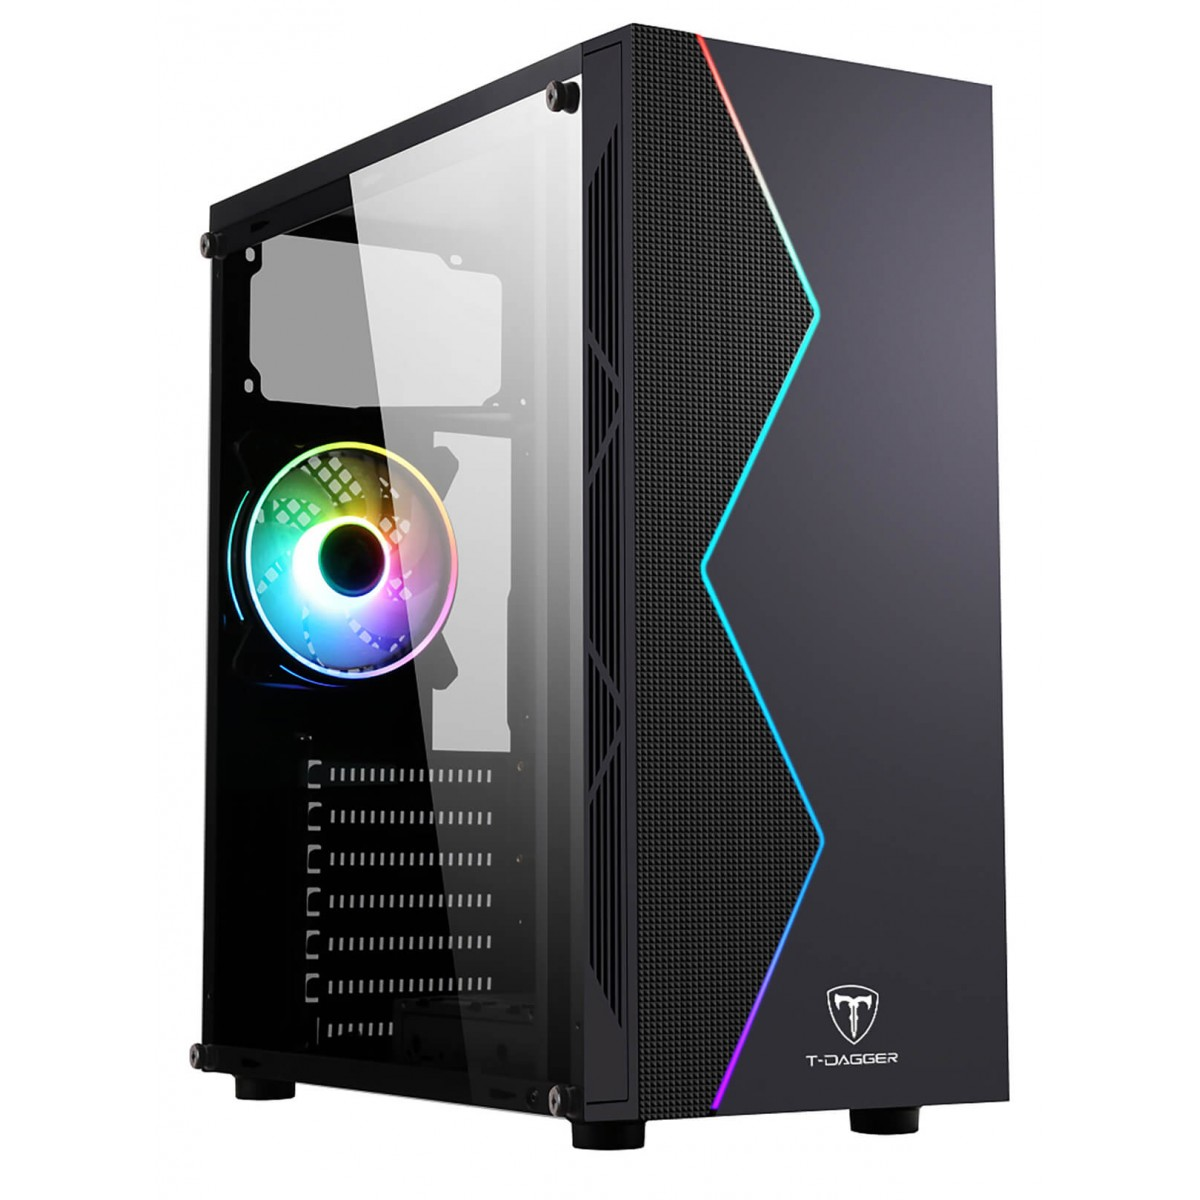 Computador Gamer, RYZEN 3 2200G 3.5Ghz , VIdeo Vega 8, DDR4 8GB, SSD 240GB